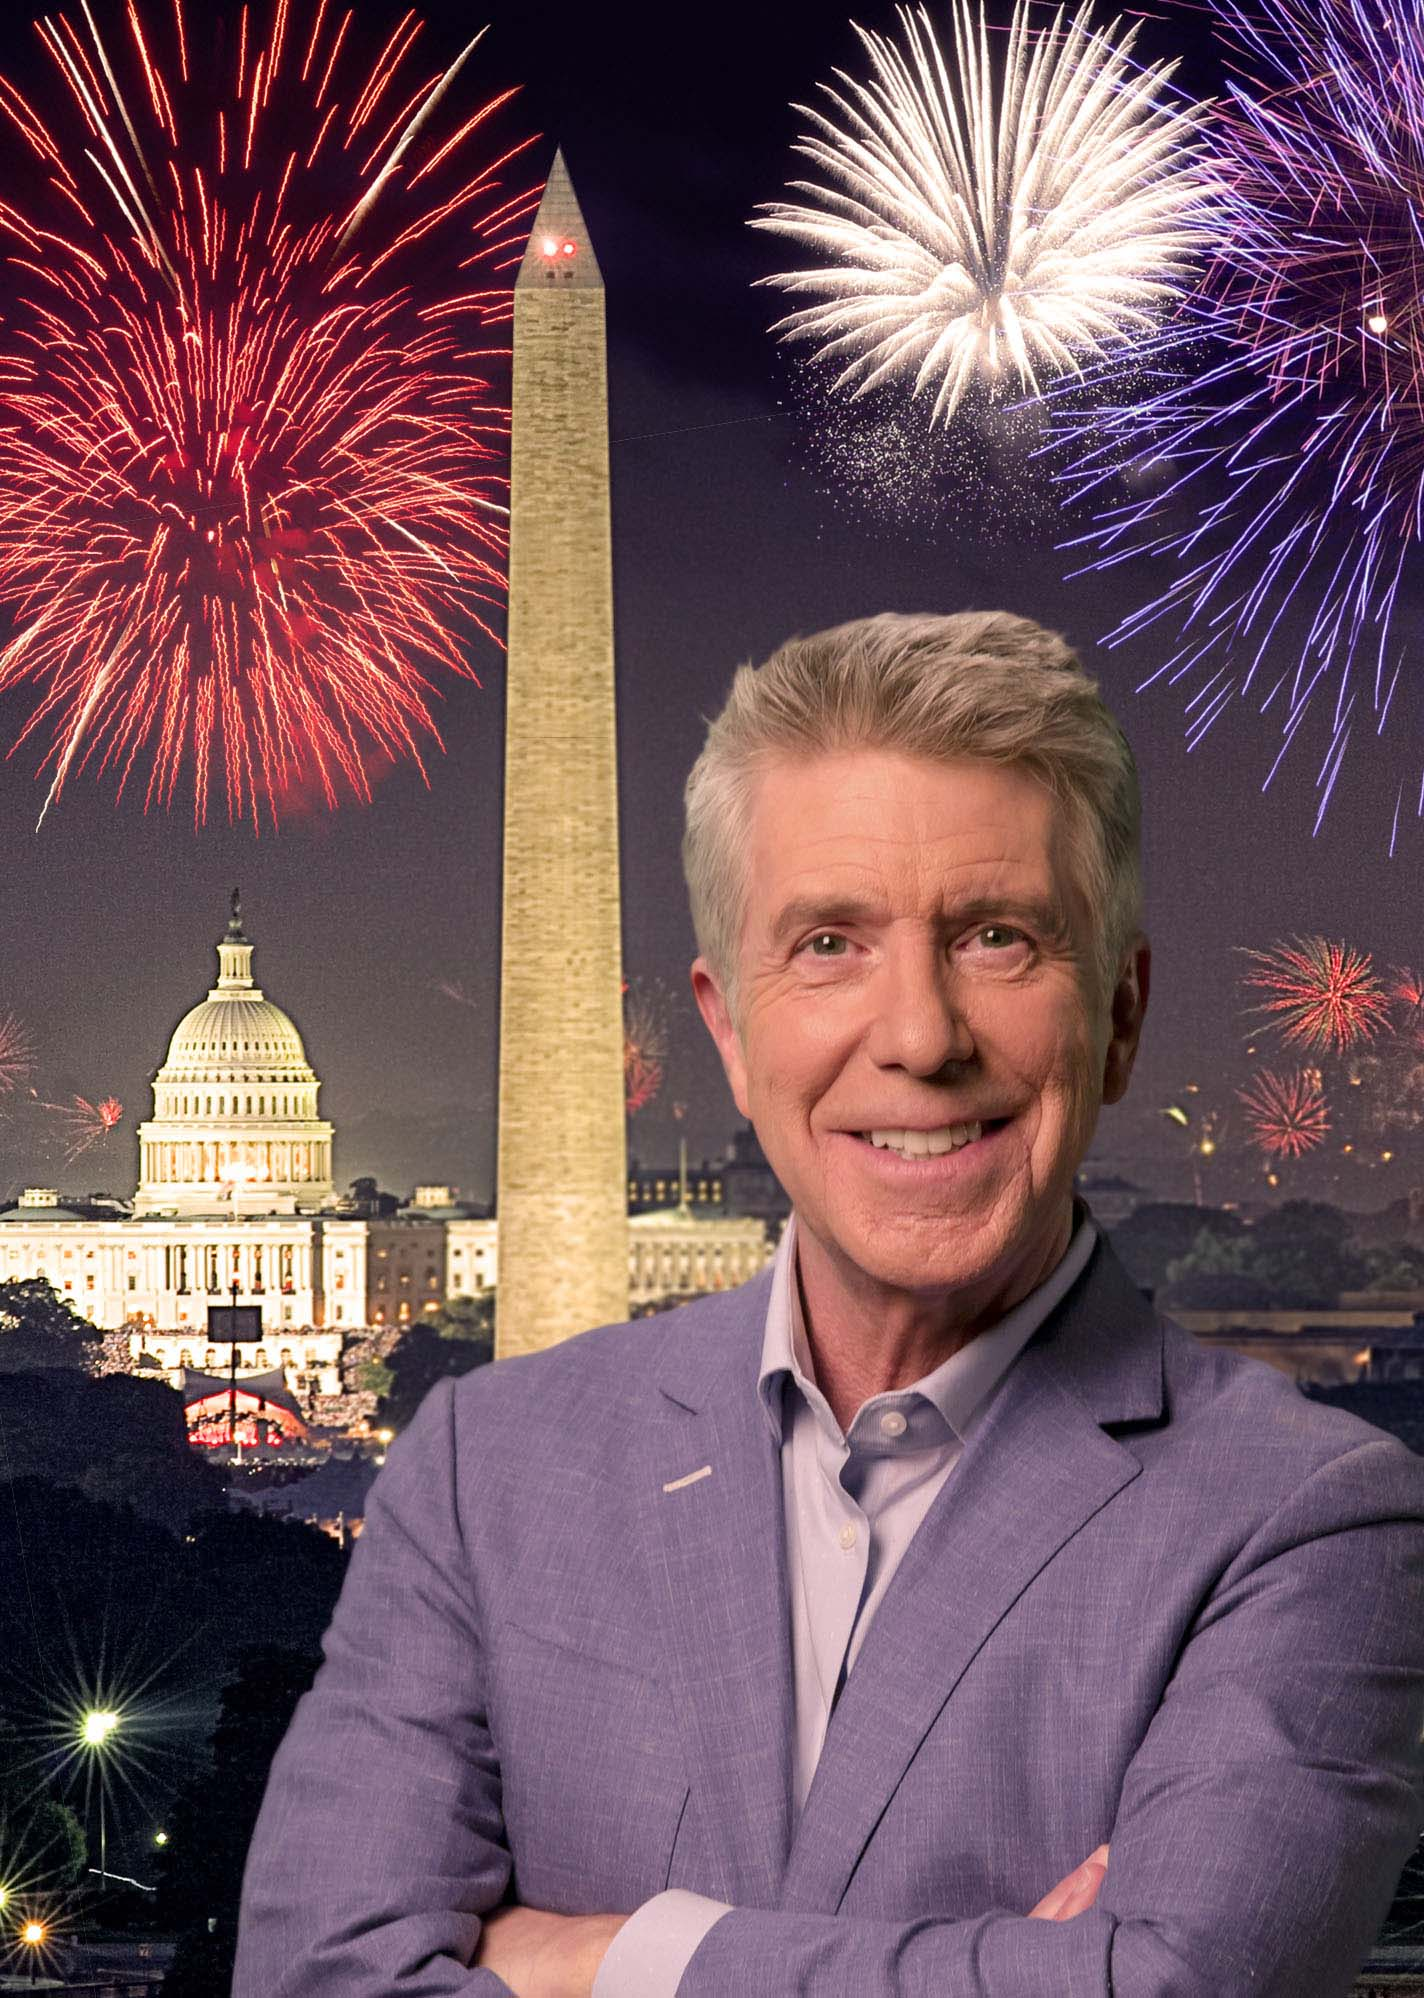 PBS' A CAPITOL FOURTH Welcomes Back America's Favorite Host Tom Bergeron To Lead The National Independence Day Celebration Live From The U.S. Capitol!